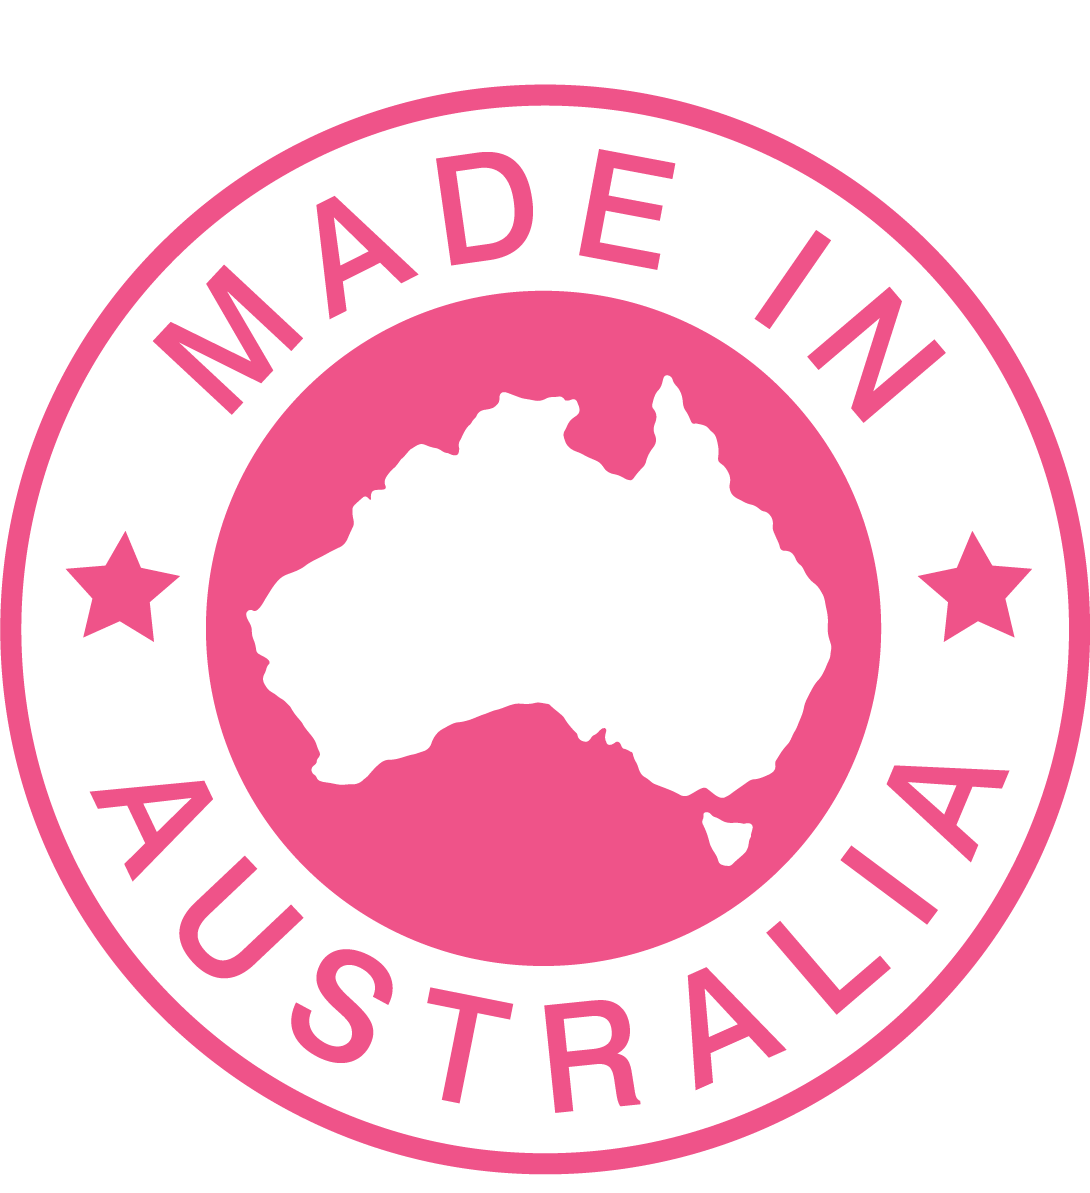 made in australia icon